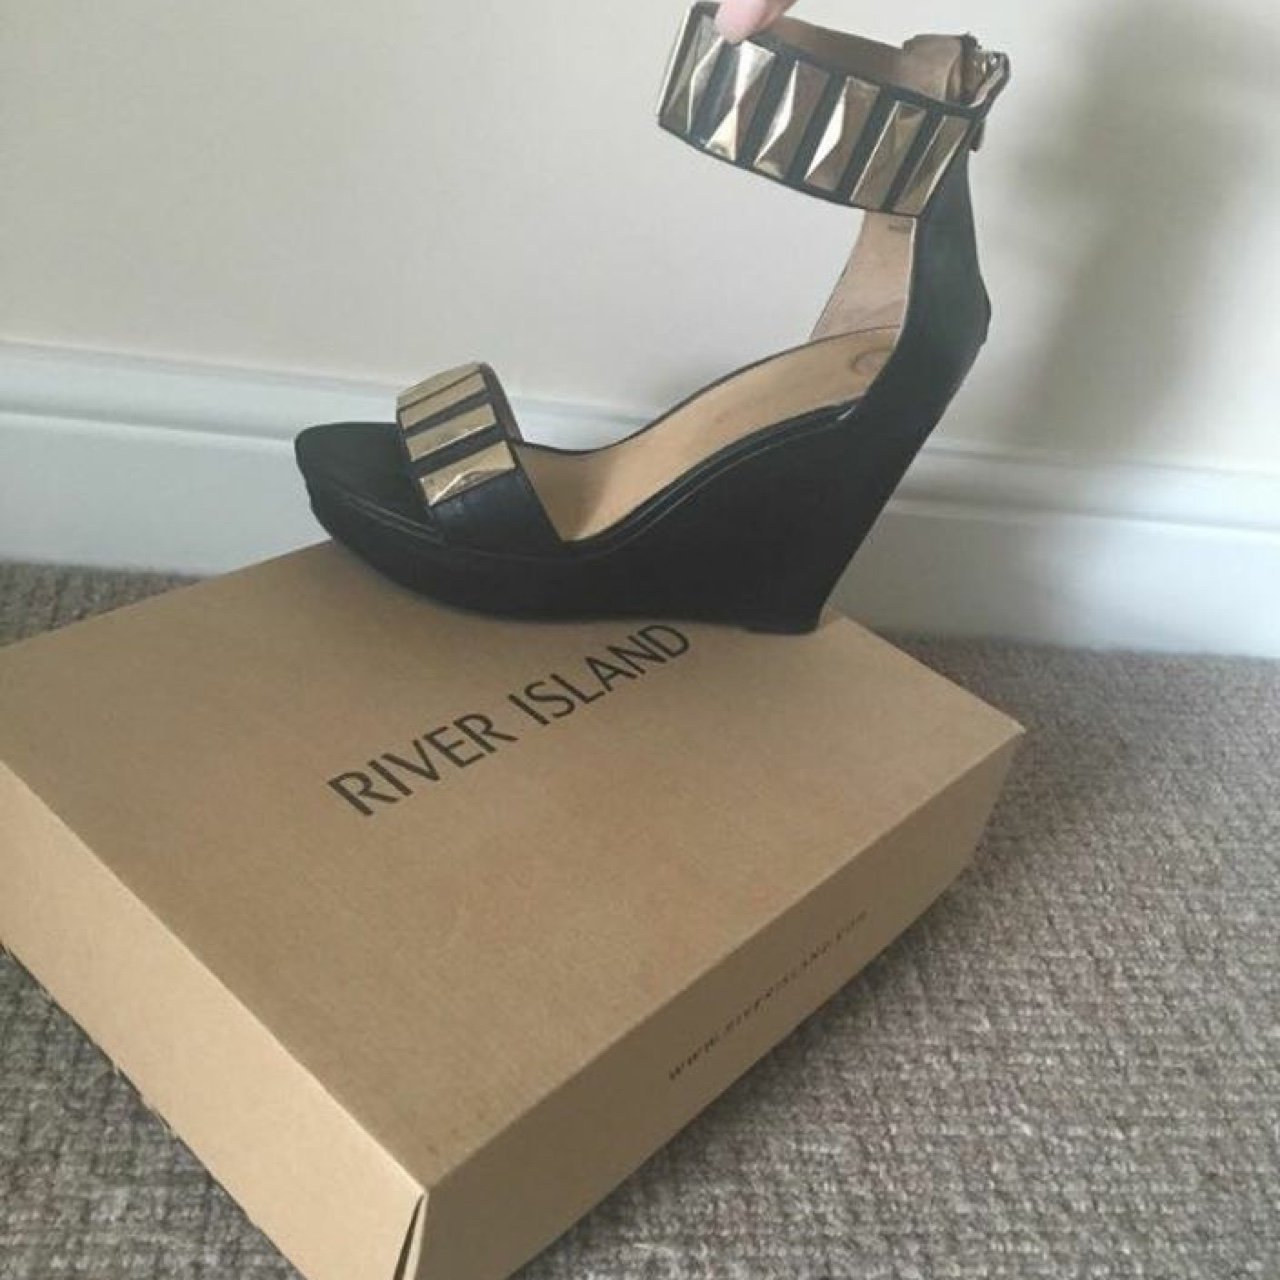 e6dd3733d805 River Island Black and Gold Stud Wedges. Size 7 - Depop